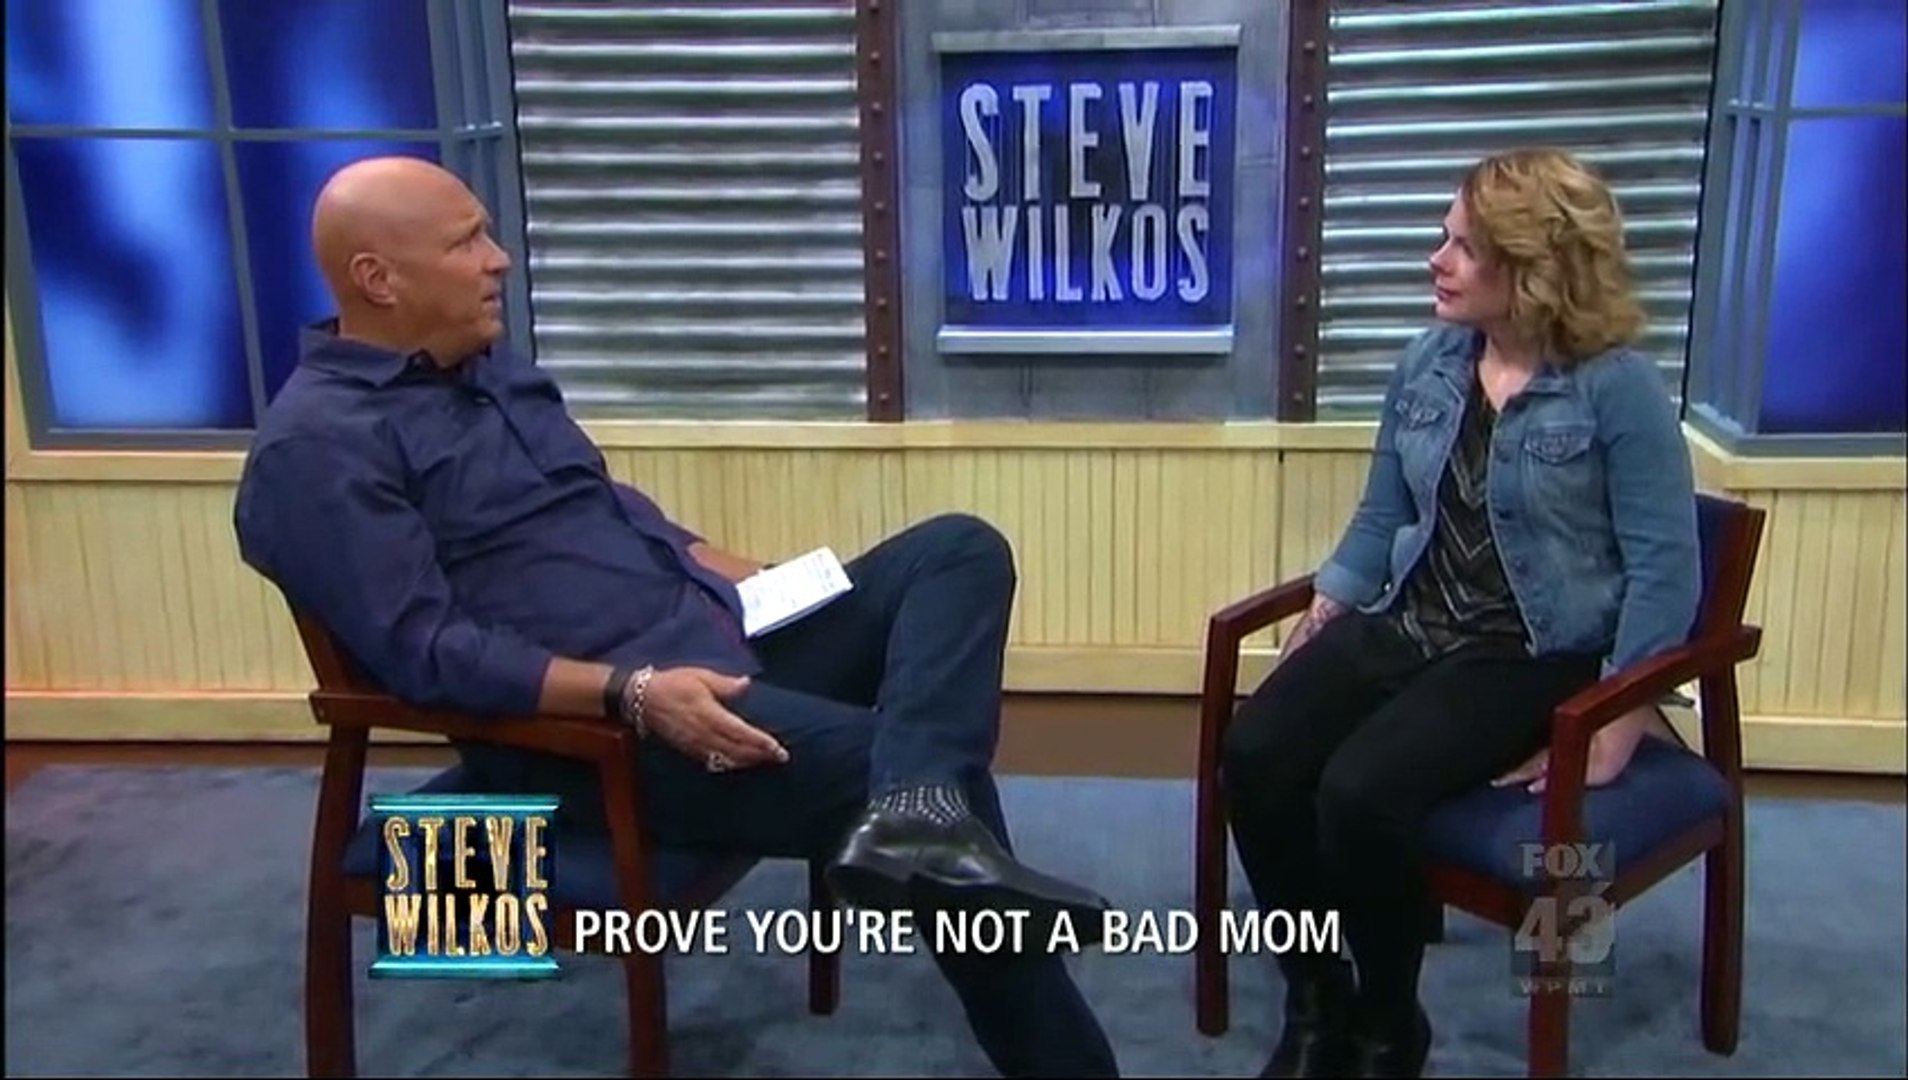 Steve Wilkos Show-2019 01 30 Prove You're Not a Bad Mom